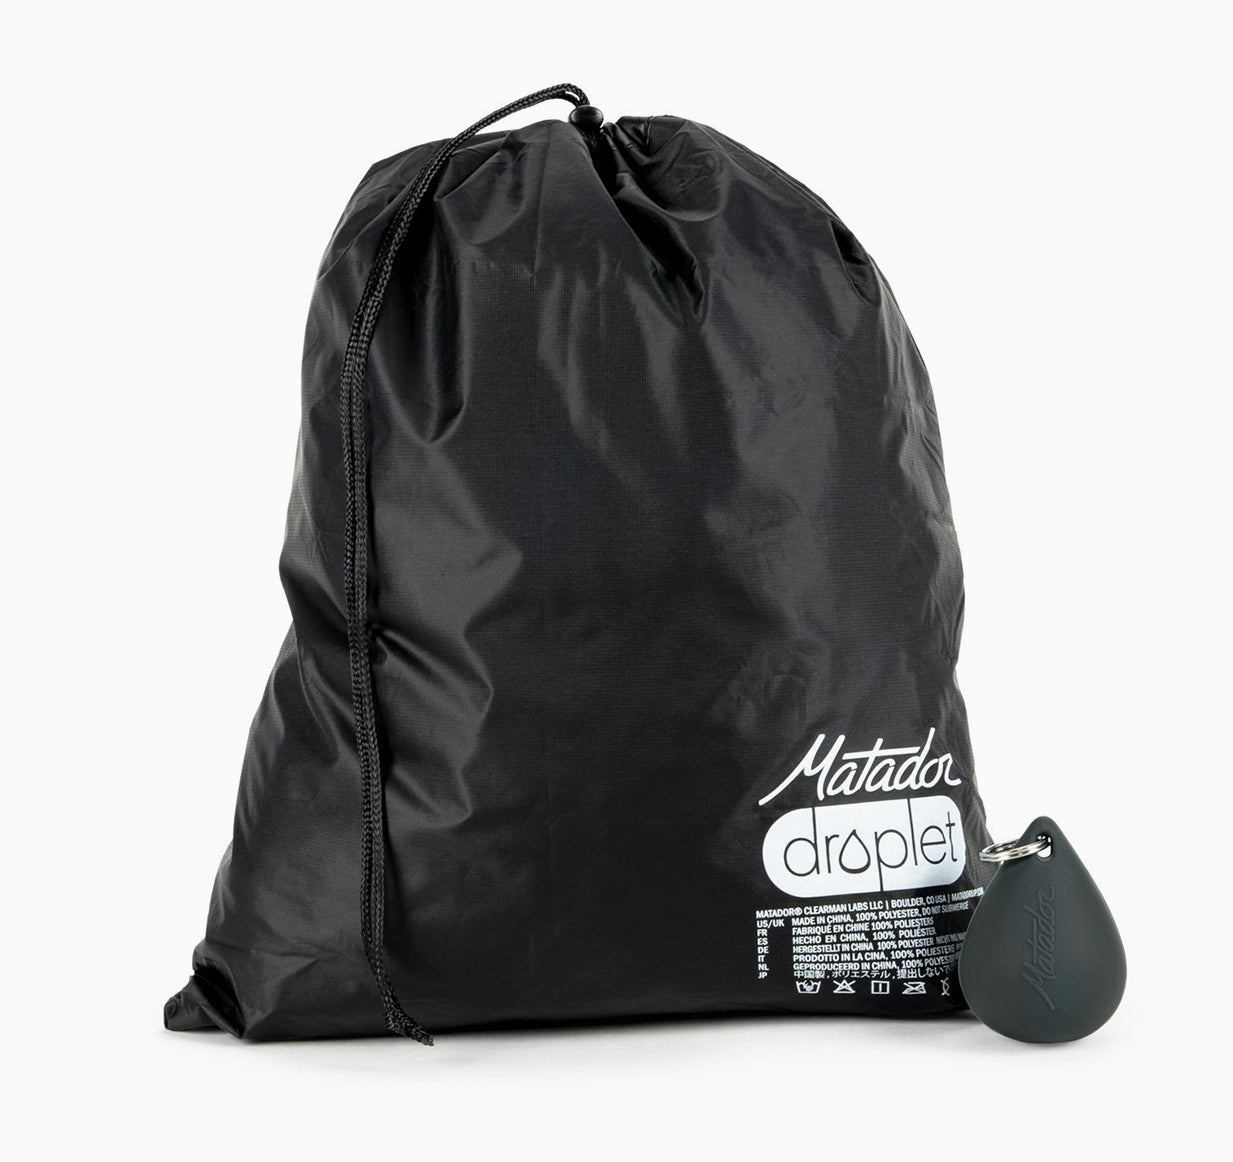 Full black dry bag and silicone case on white background